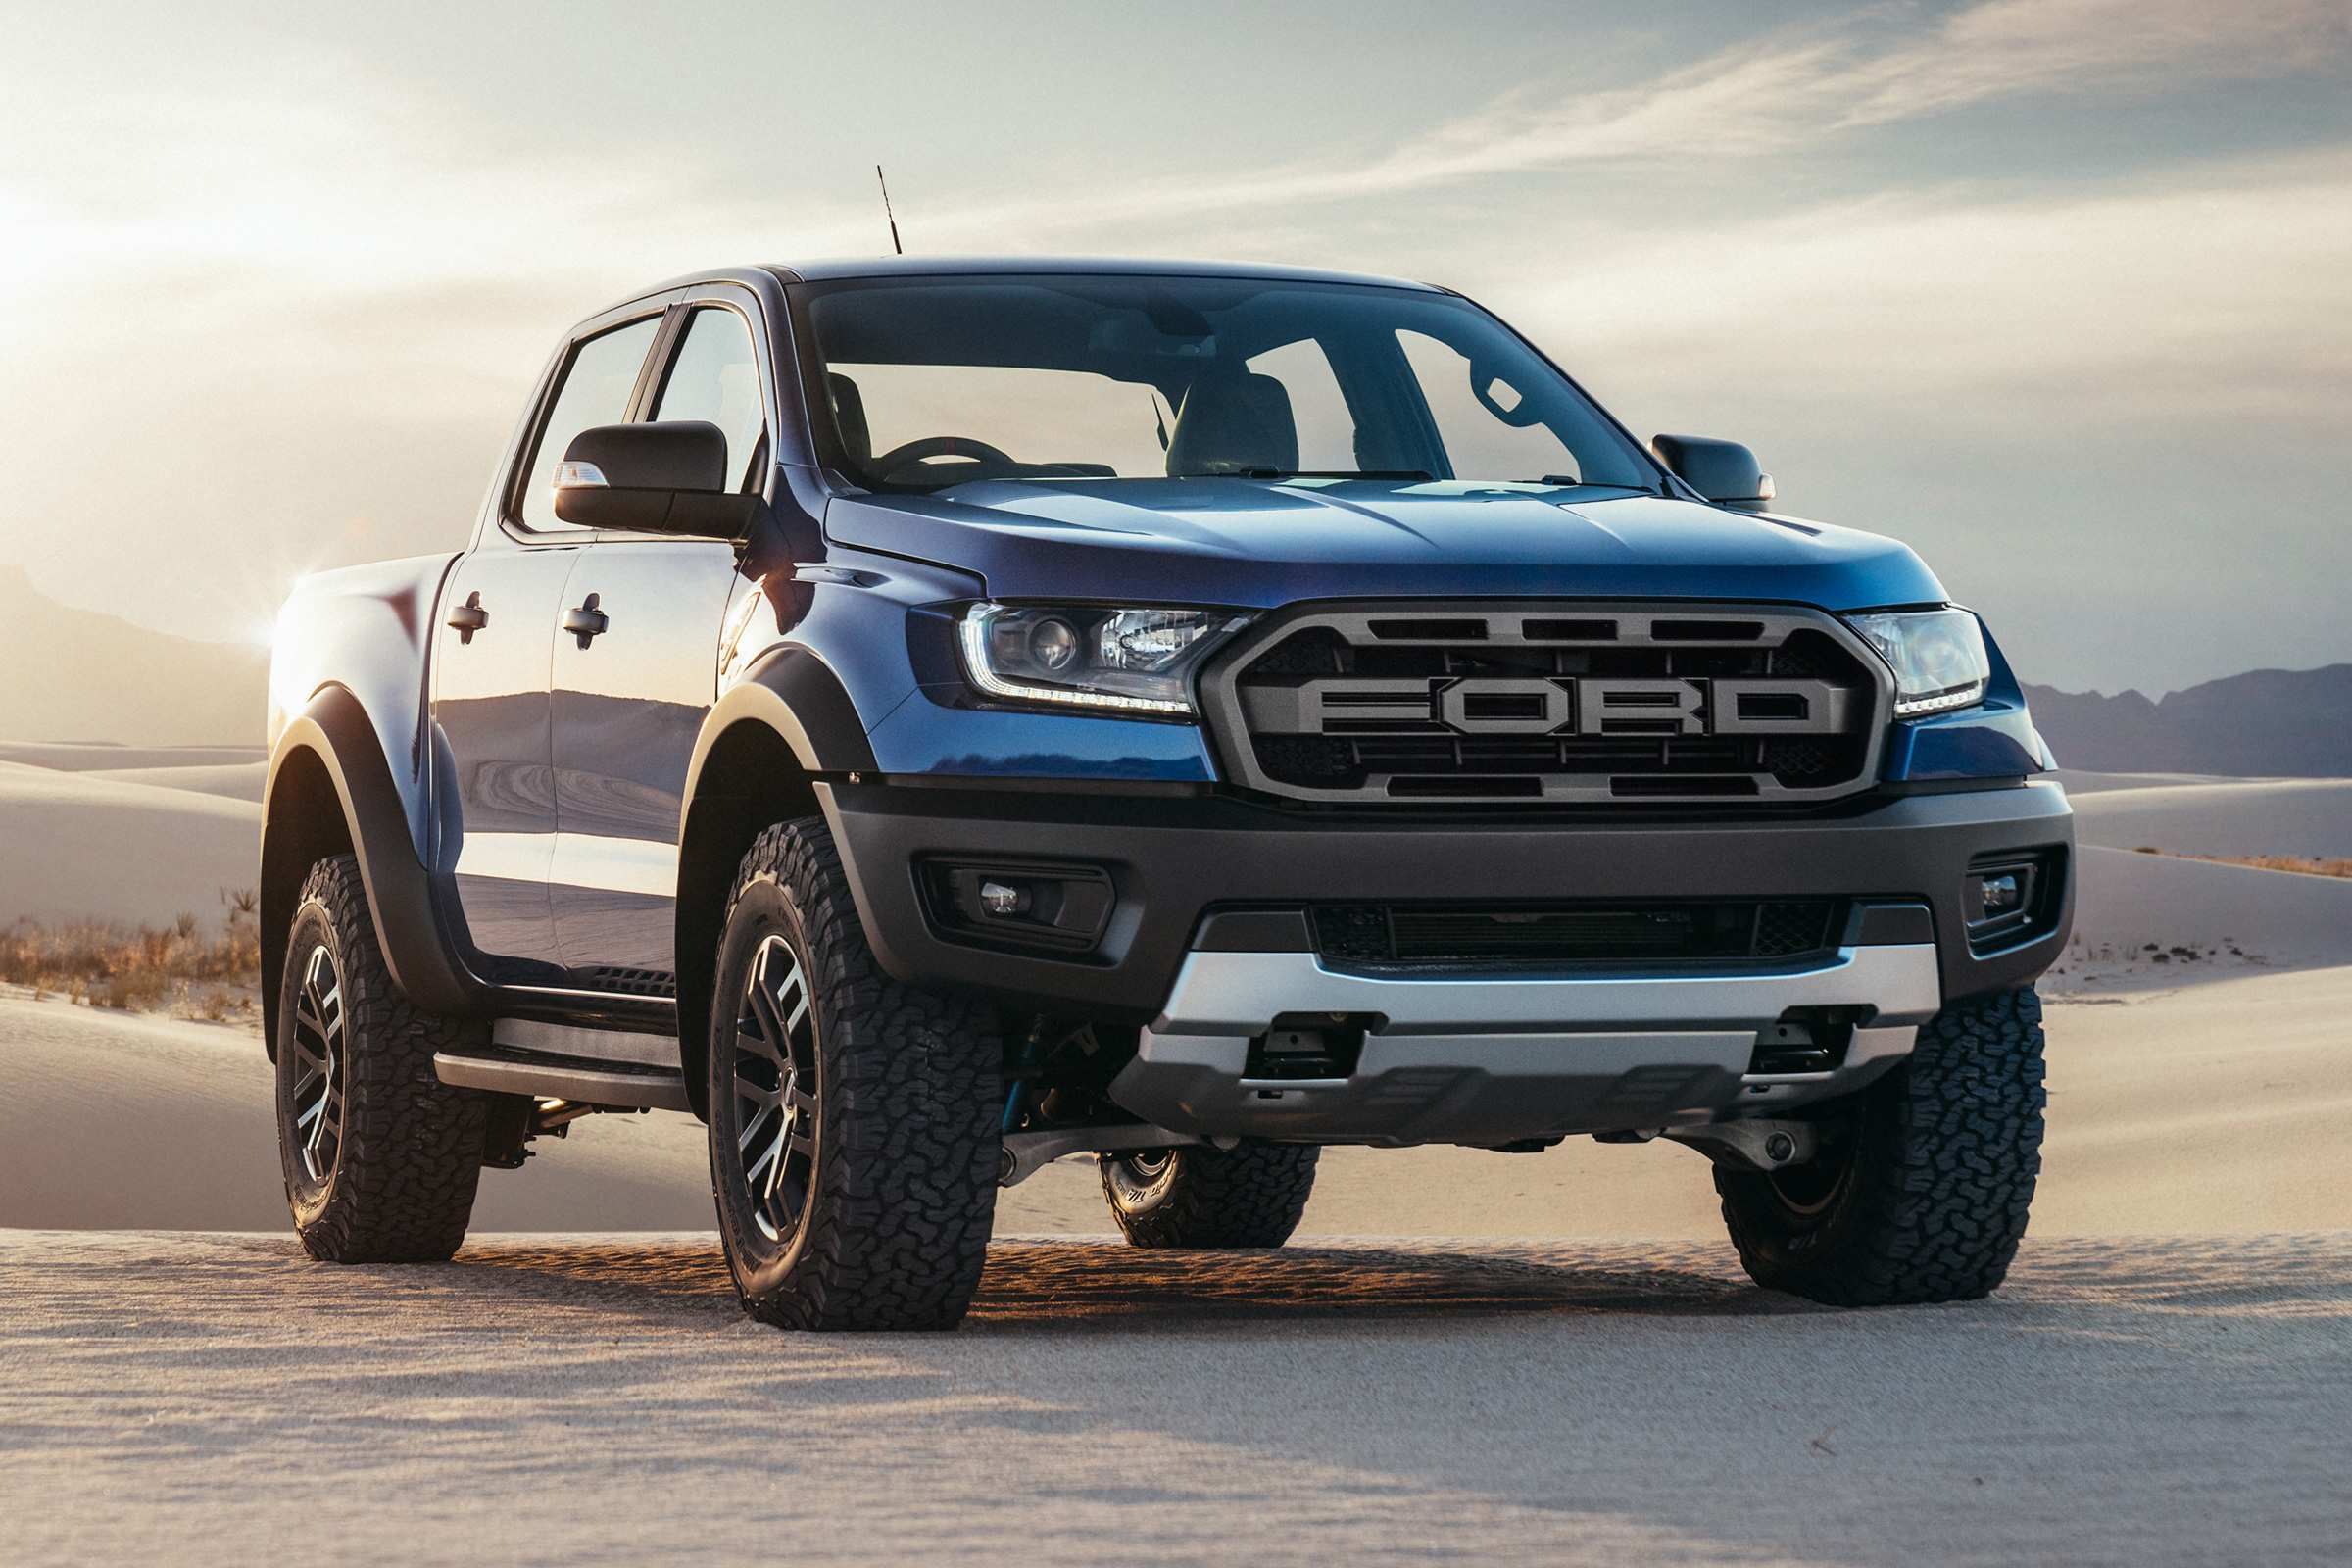 87 All New Ford Ranger 2019 Specs Performance And New Engine Speed Test by Ford Ranger 2019 Specs Performance And New Engine